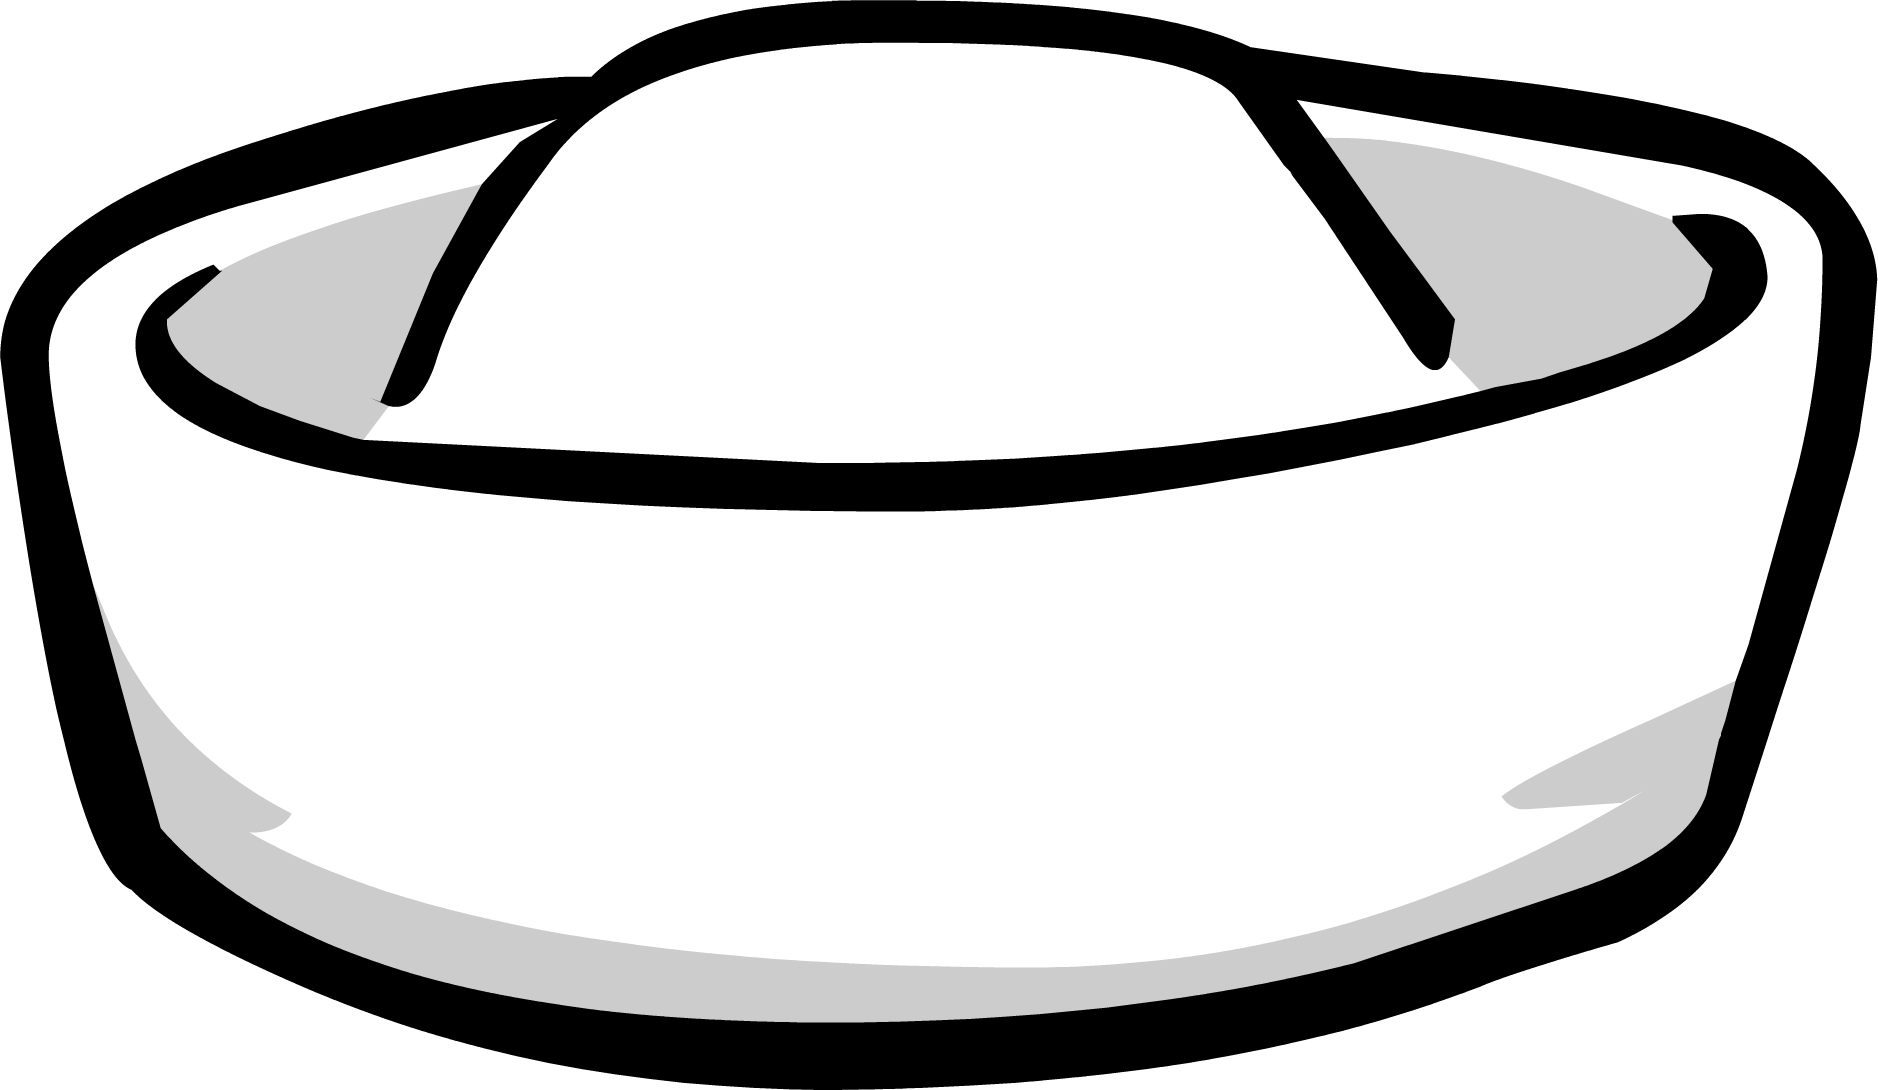 Sailor hat png. Image clothing icon id